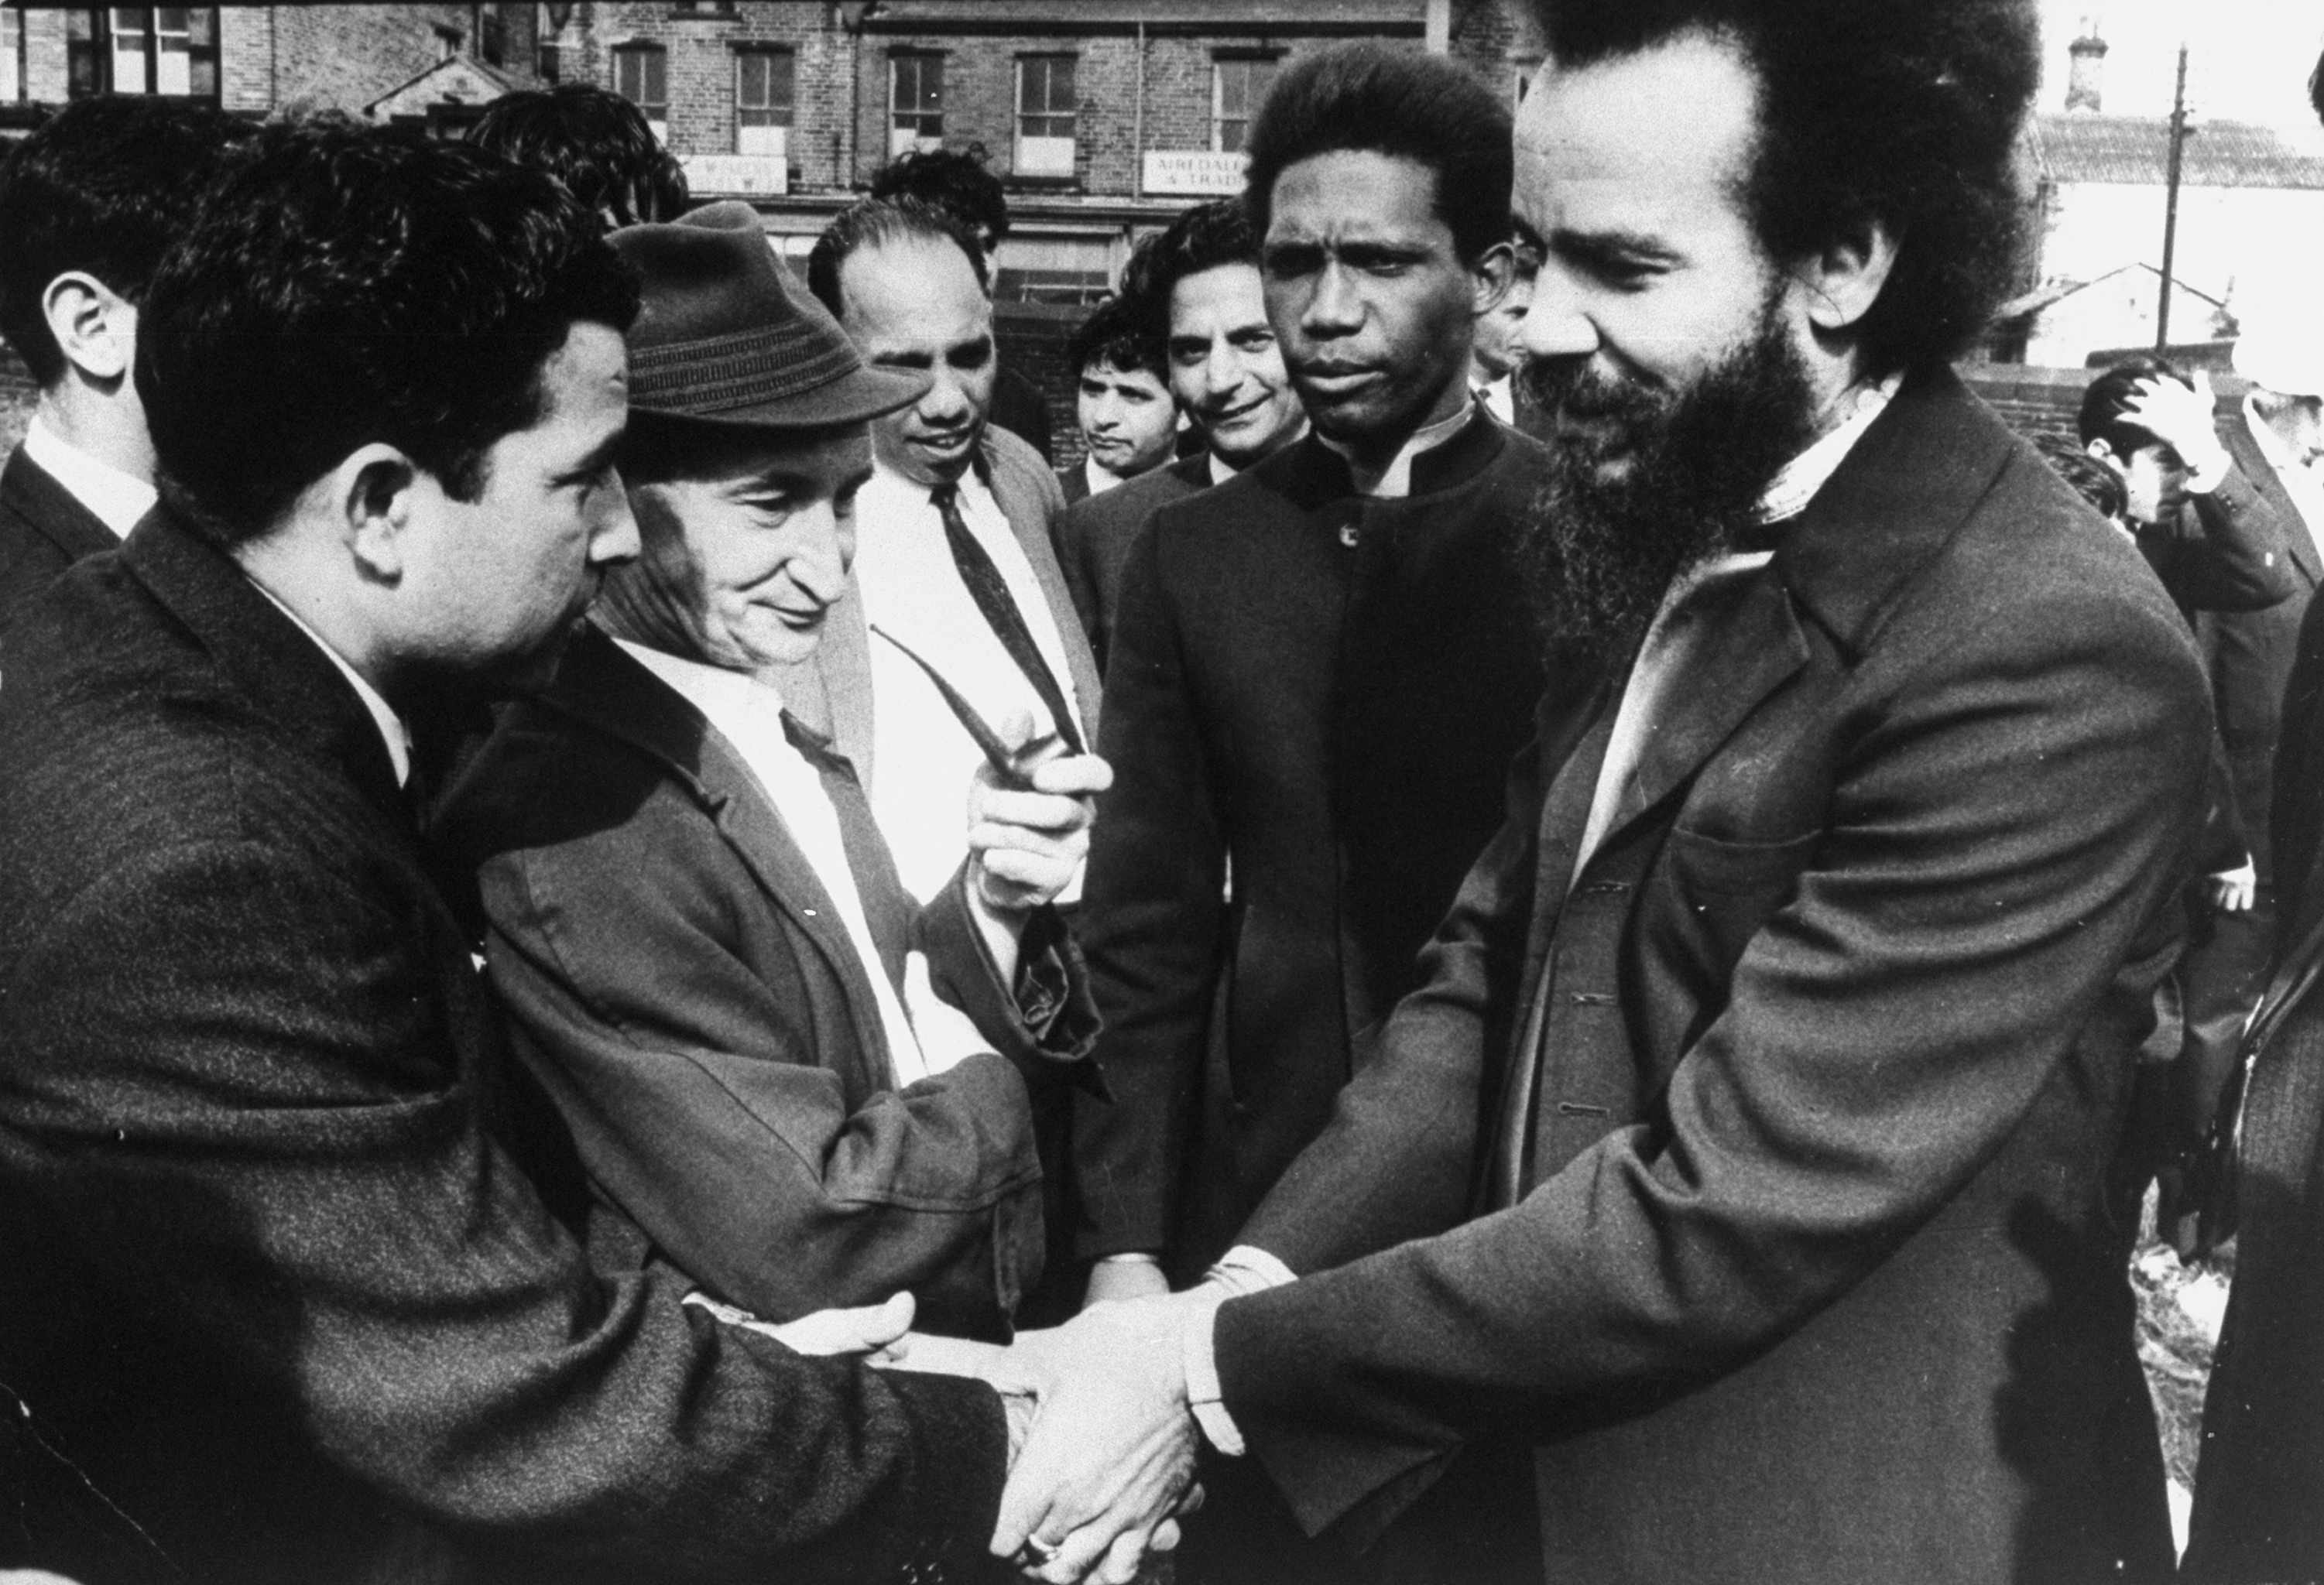 Michael X, (right, foreground) black power advocate, in Hyde Park. (Photo by Terence Spencer/The LIFE Picture Collection/Getty Images)